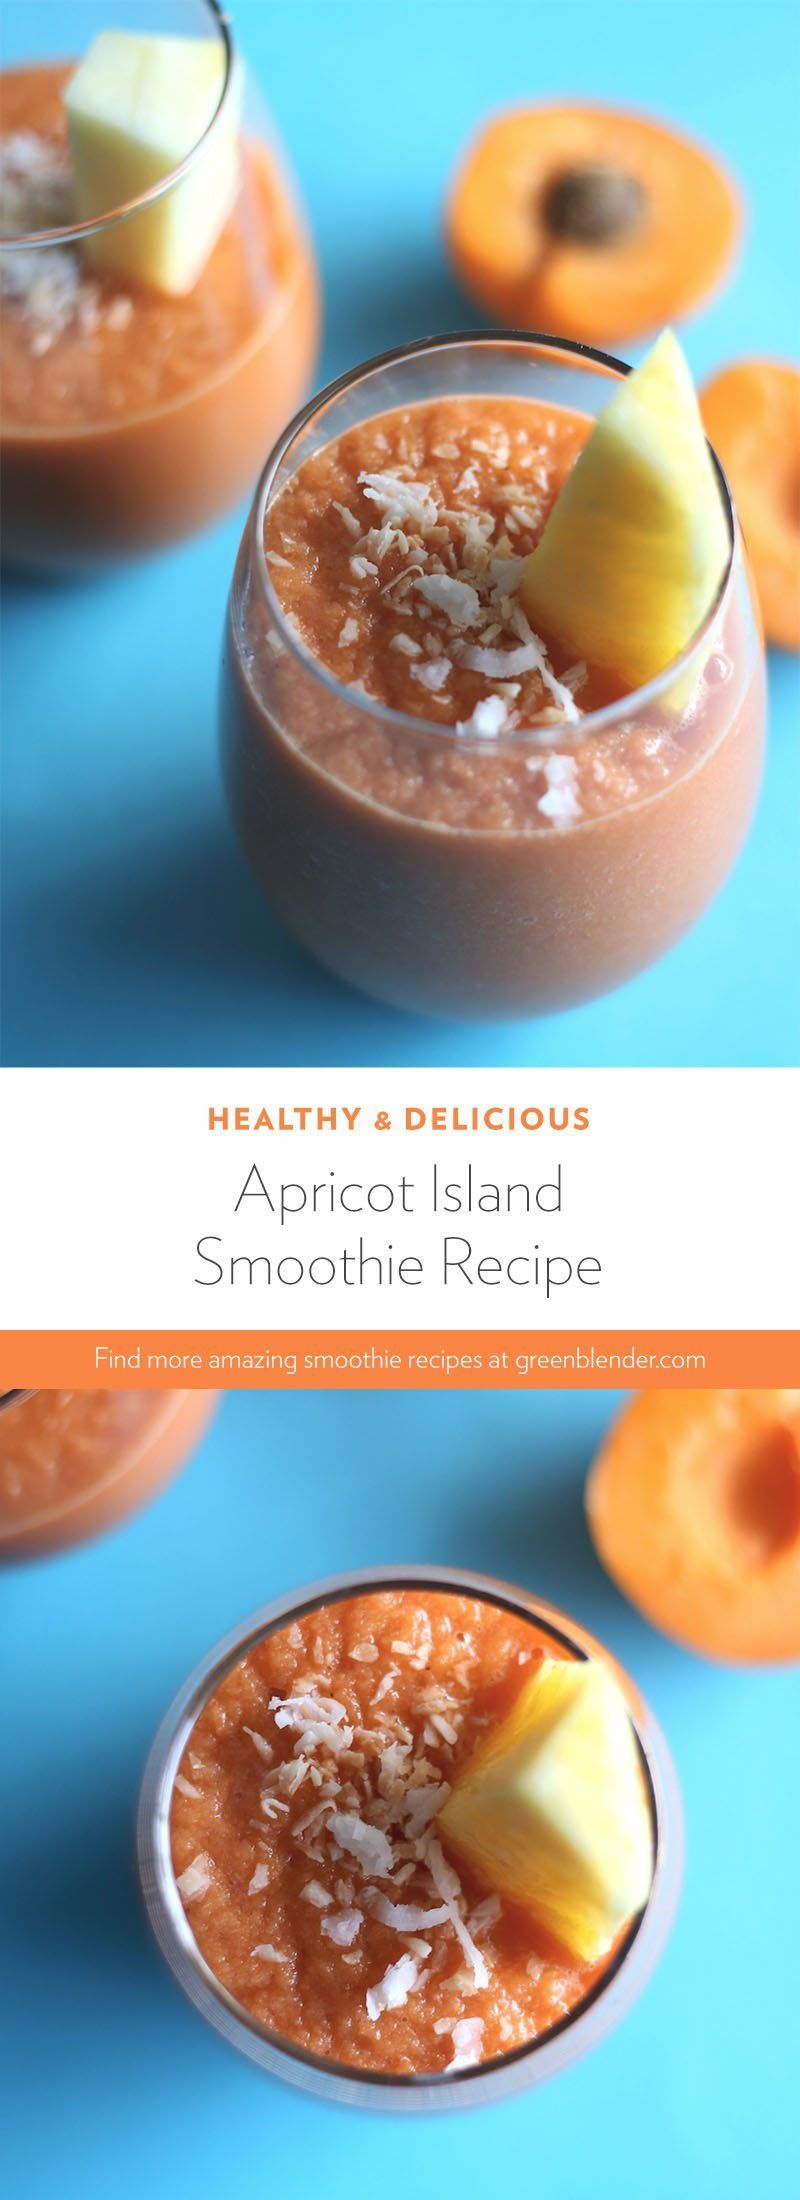 Apricot Island | Smoothie recipes, Smoothies and Juice